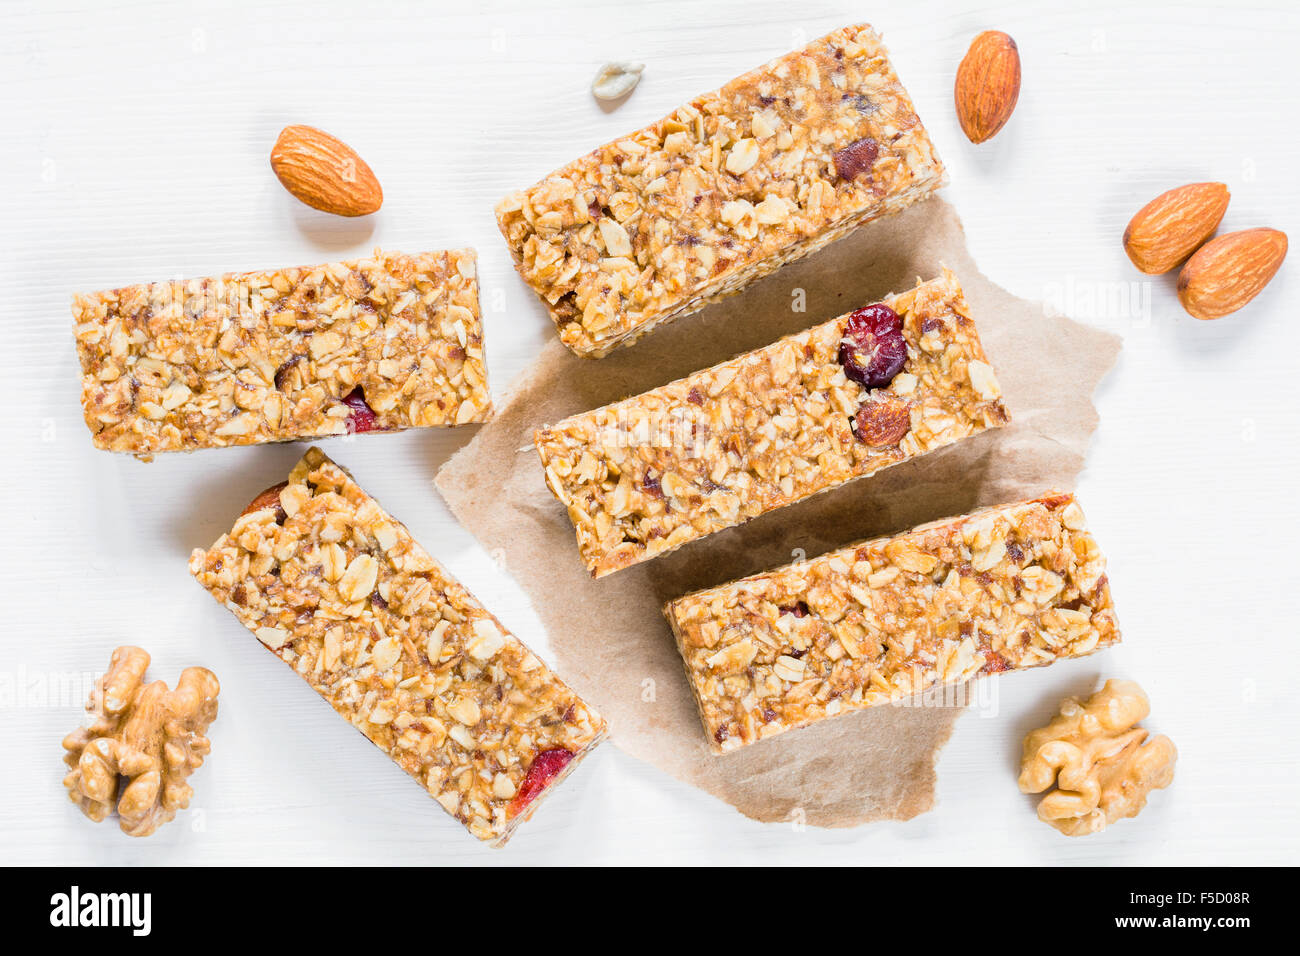 Granola Bar Or Energy Bar With Oats, Dates And Nuts On White Wooden  Background, Top View